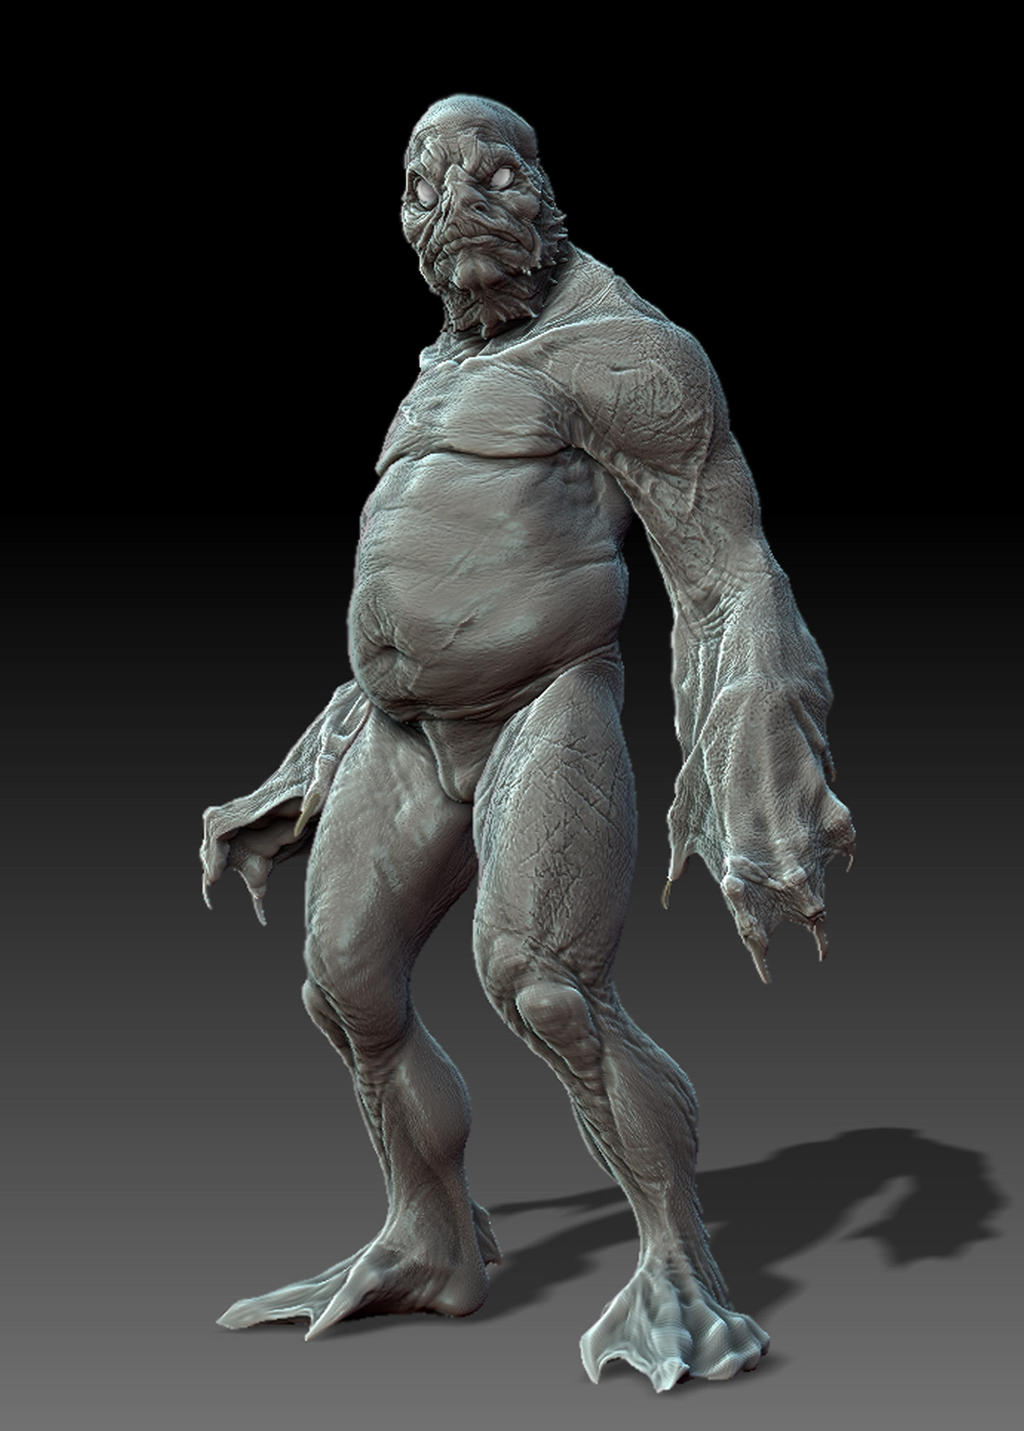 Innsmouth Brute, by DaveGrasso